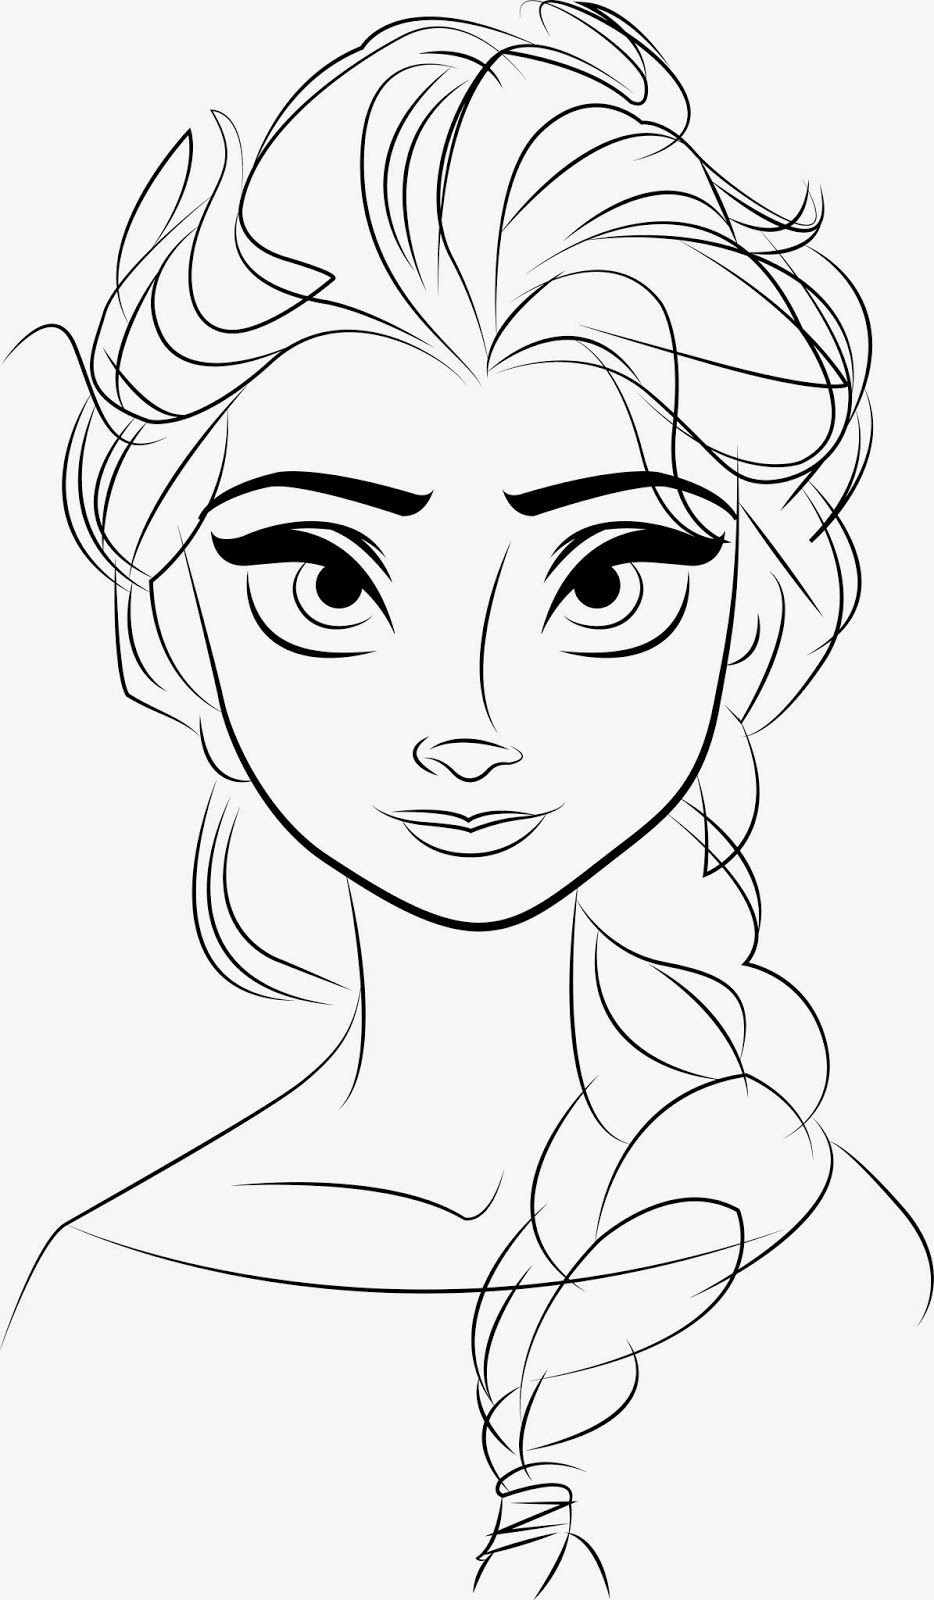 how to draw frozen characters disney frozen elsa line drawings google search tee frozen to draw how characters